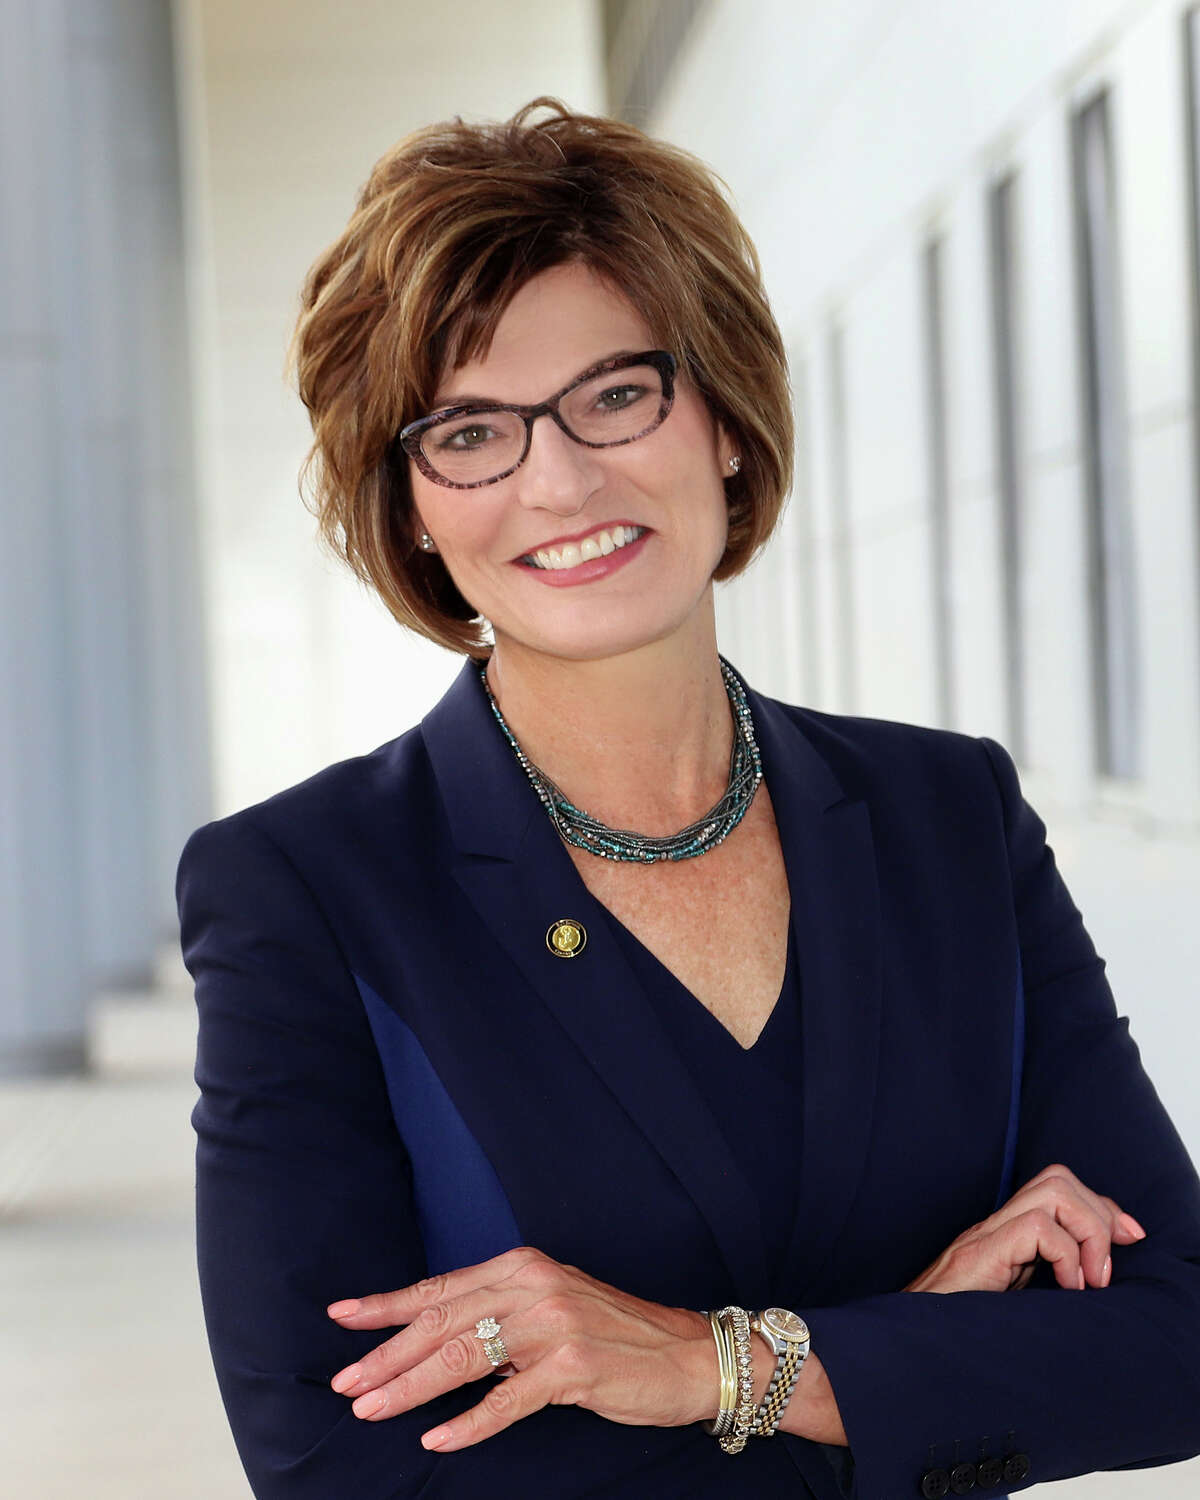 San Jacinto College Chancellor Brenda Hellyer will participate in Pasadena Chamber of Commerce's